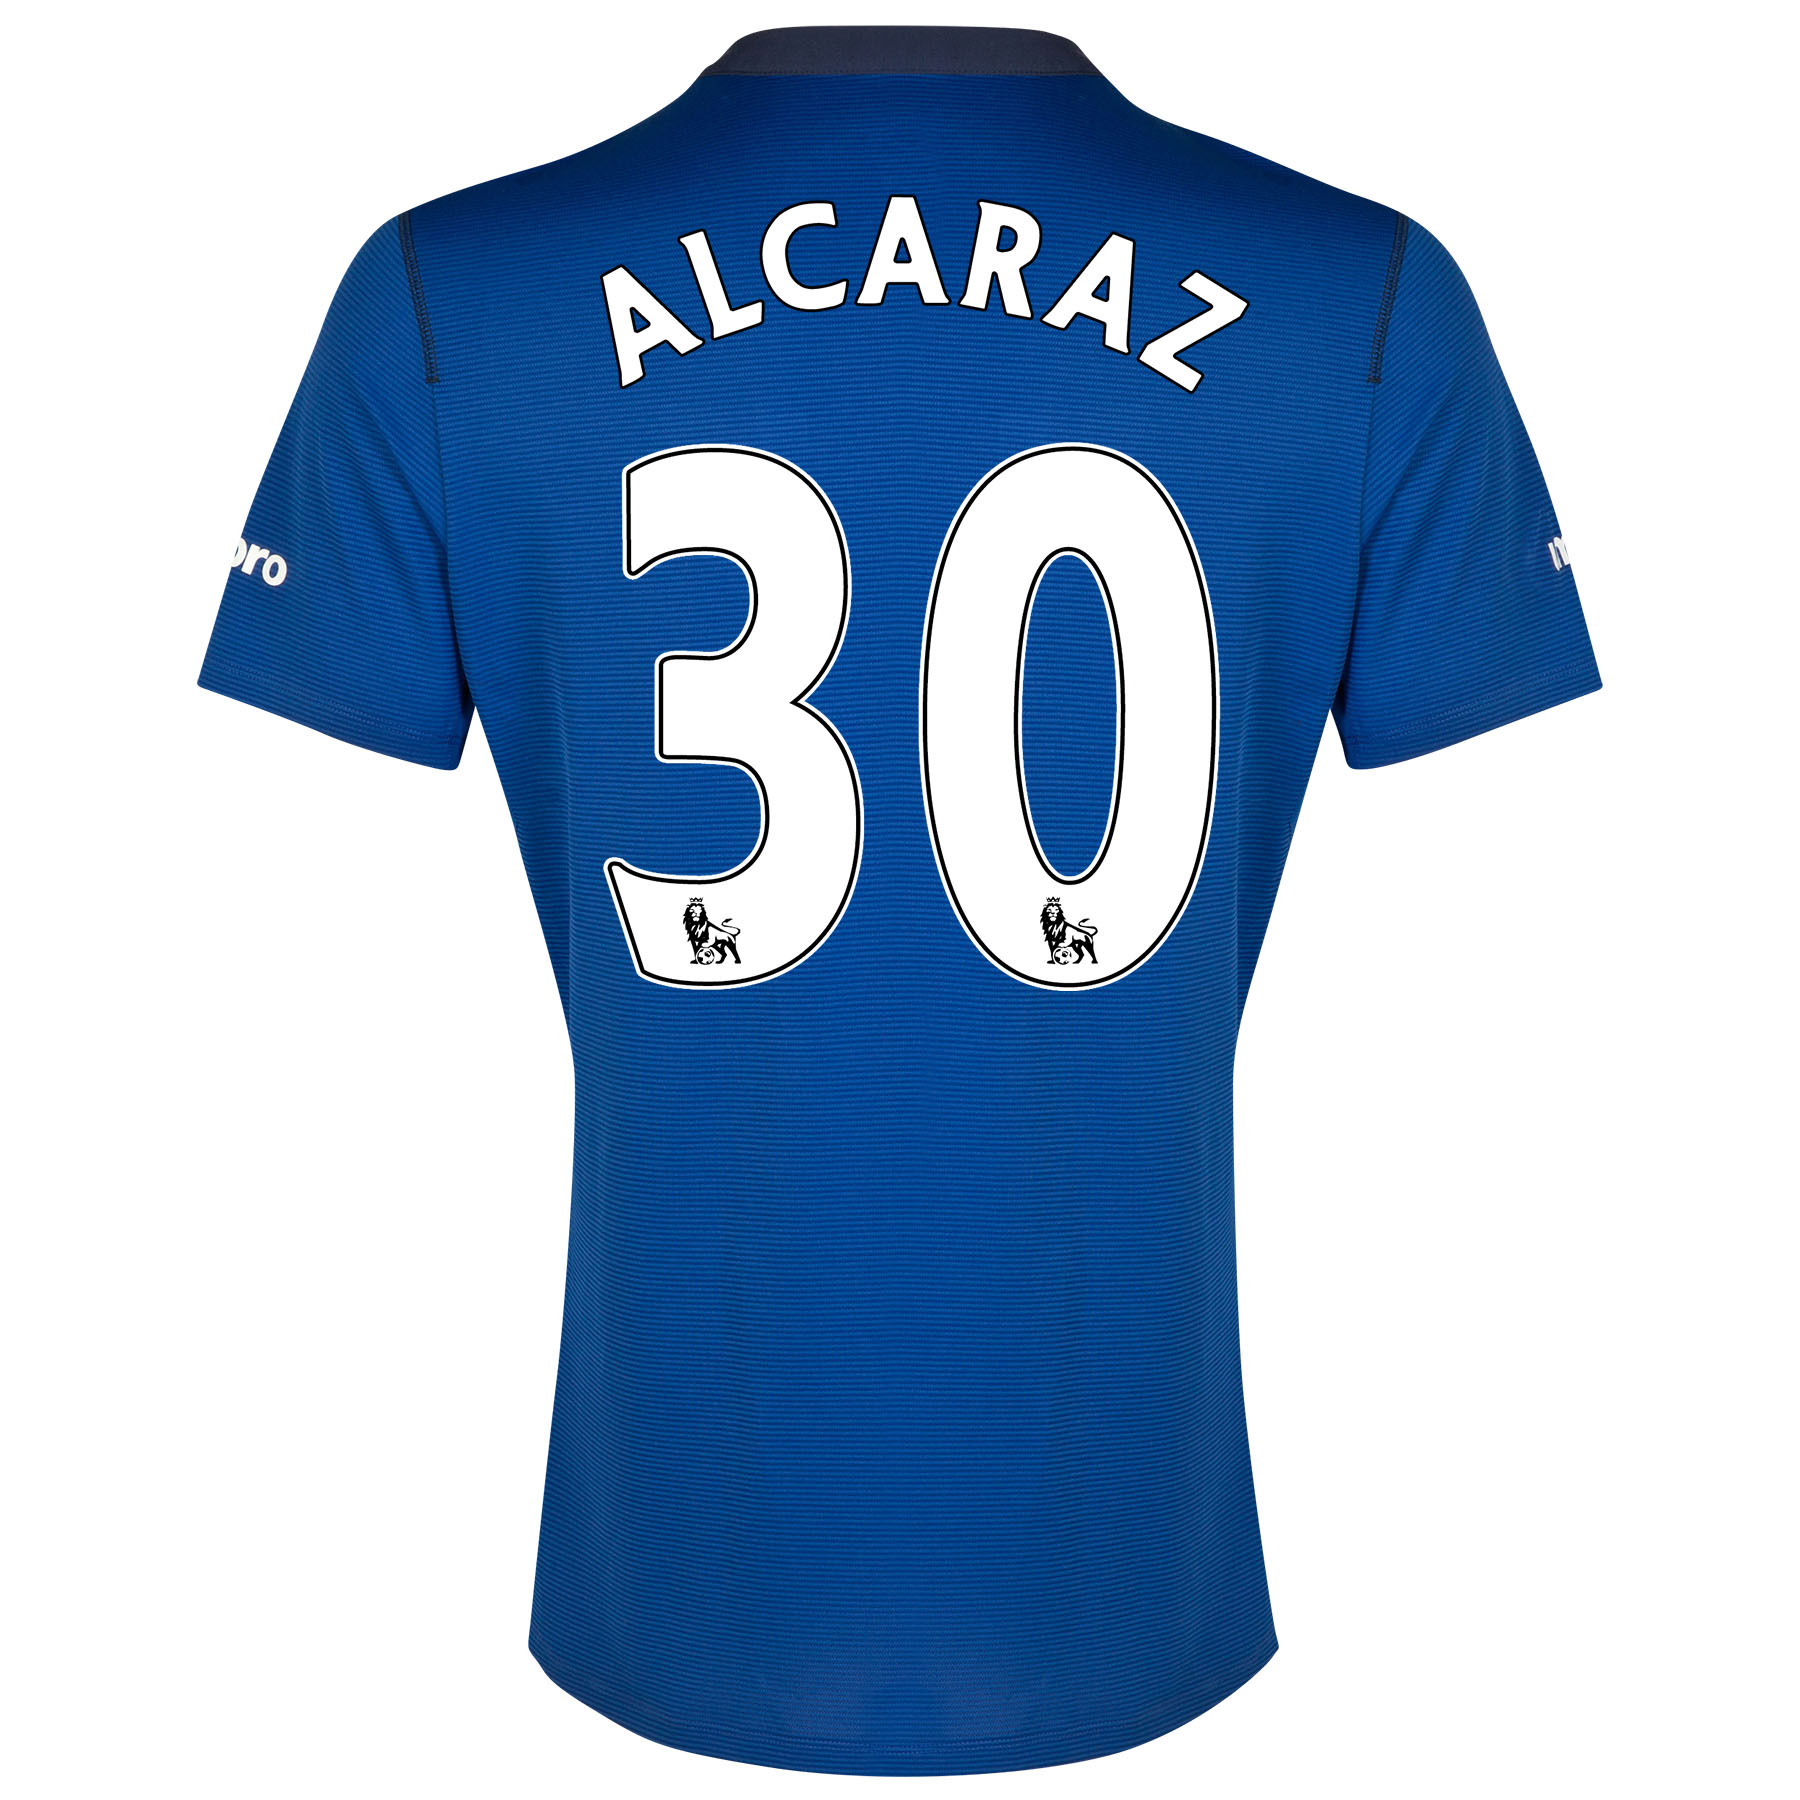 Everton SS Home Shirt 2014/15 with Alcaraz 32 printing